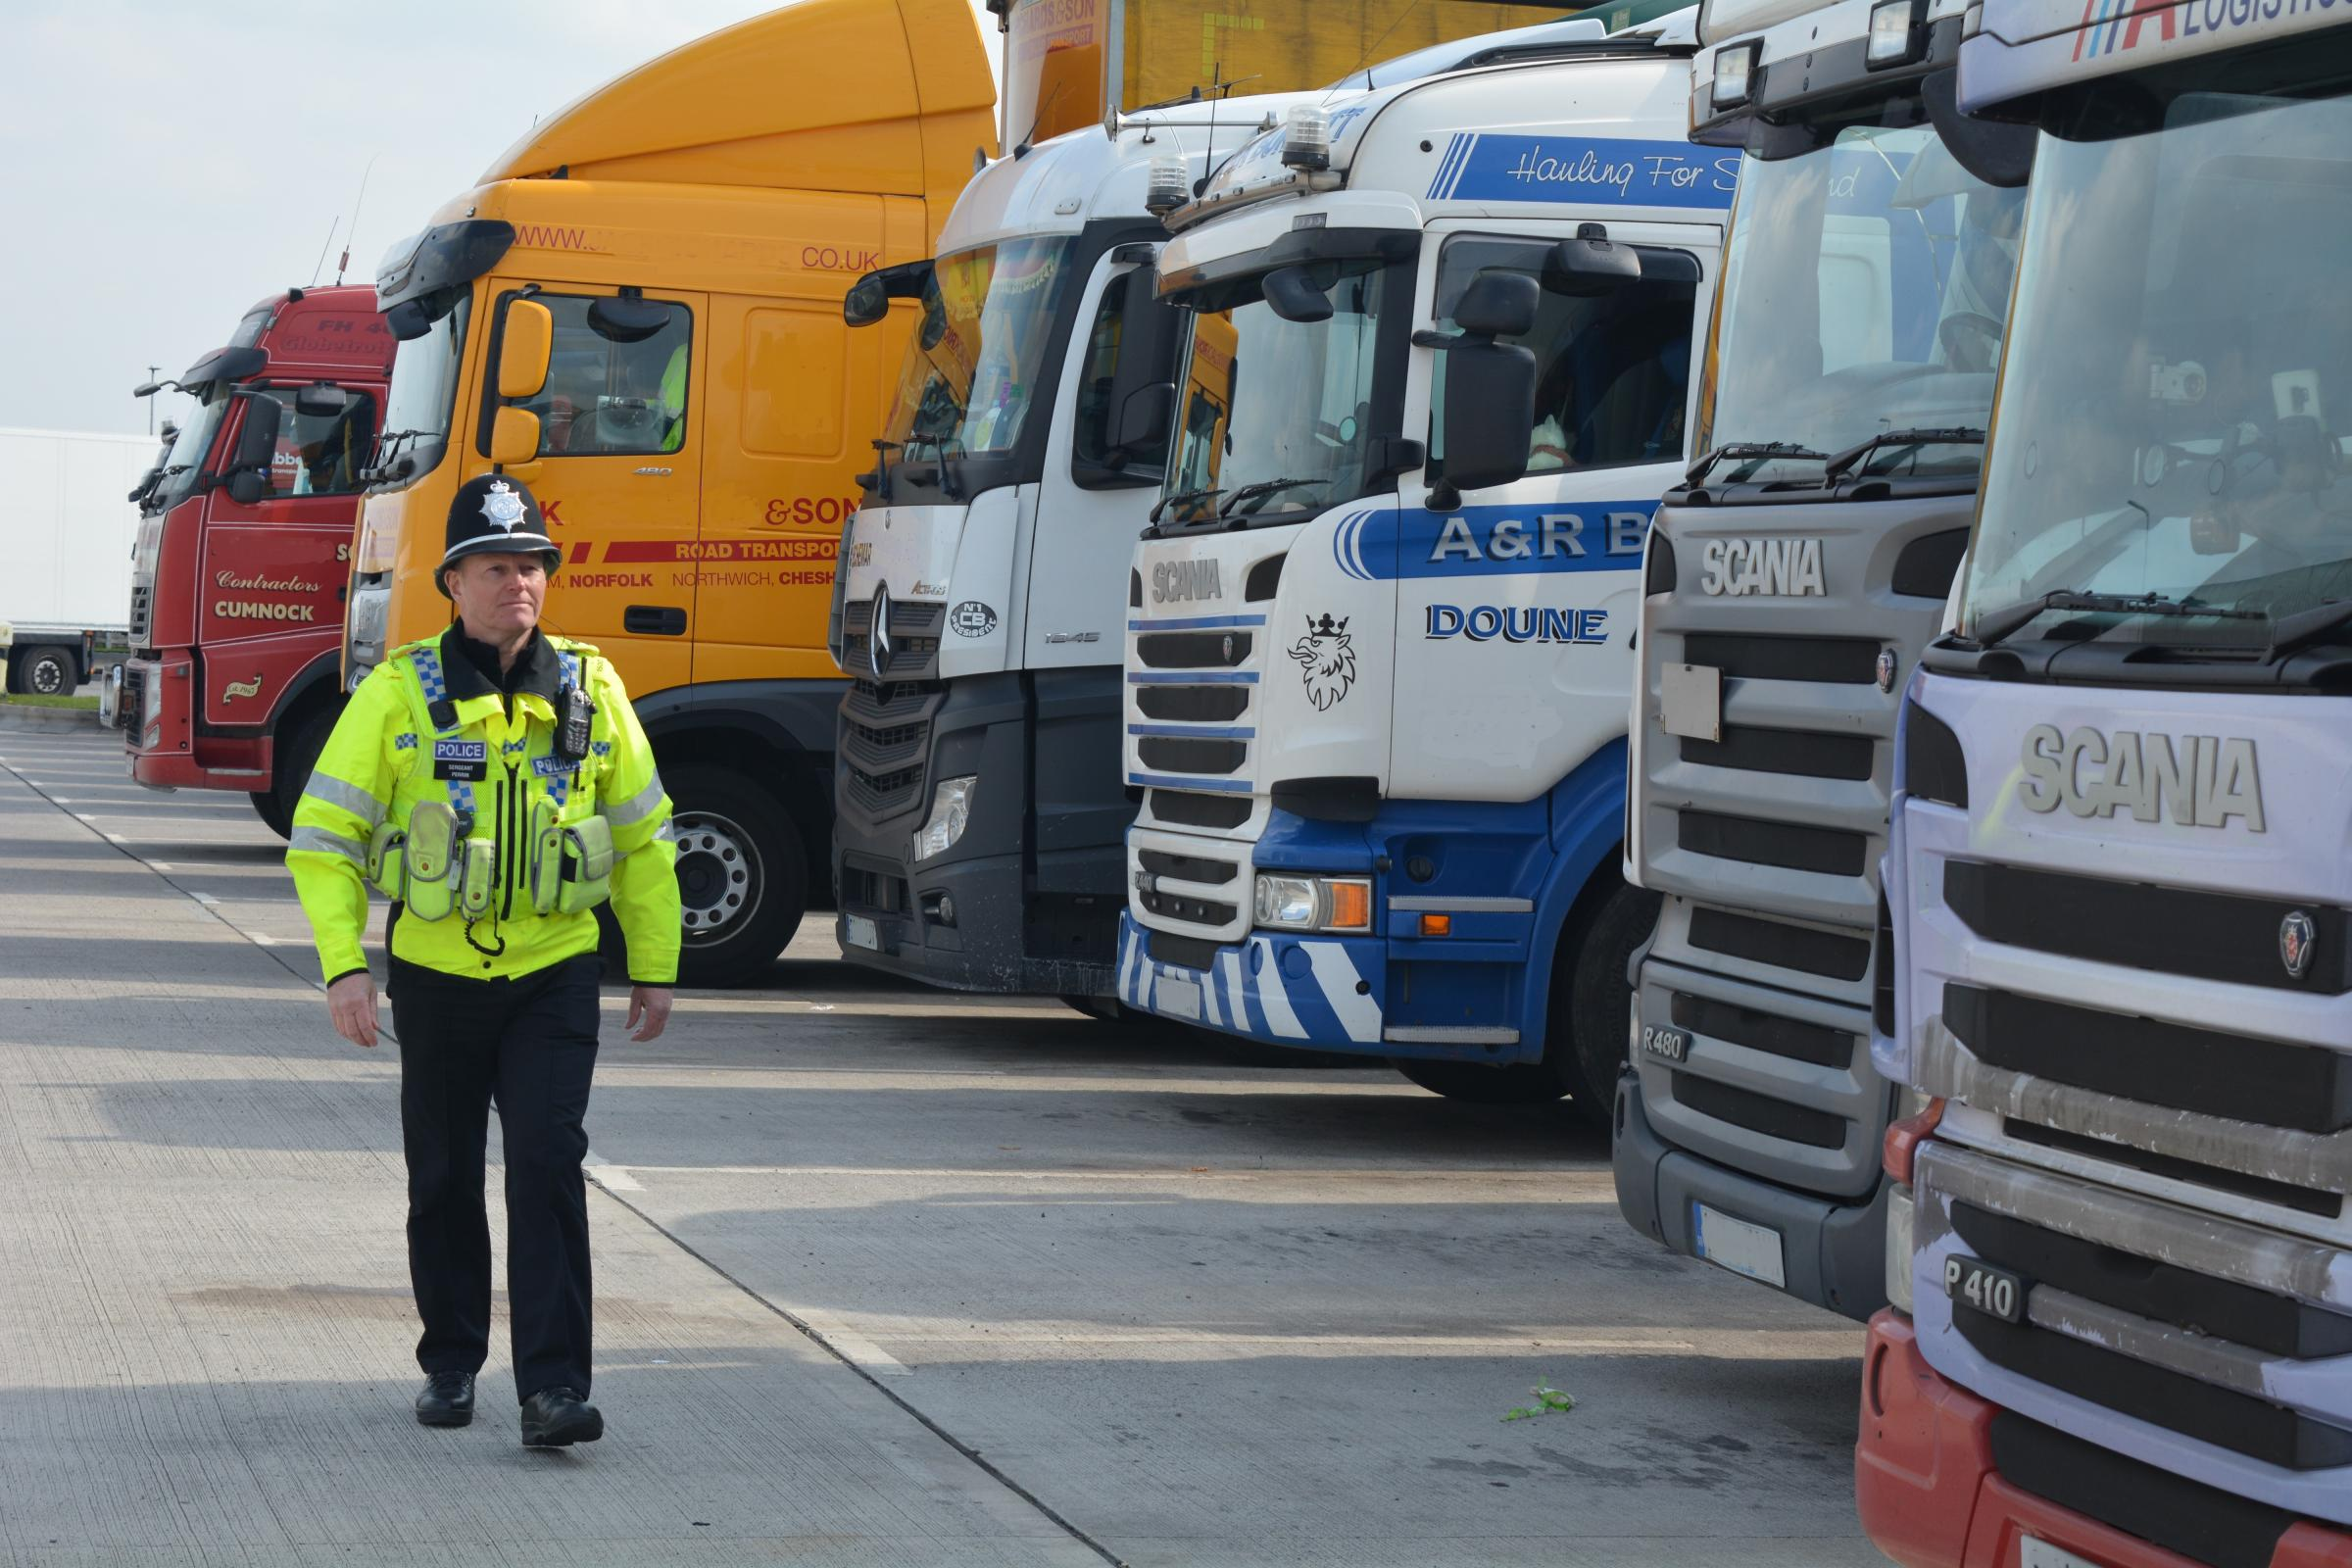 OP CARGO: Police campaign to fight lorry crime